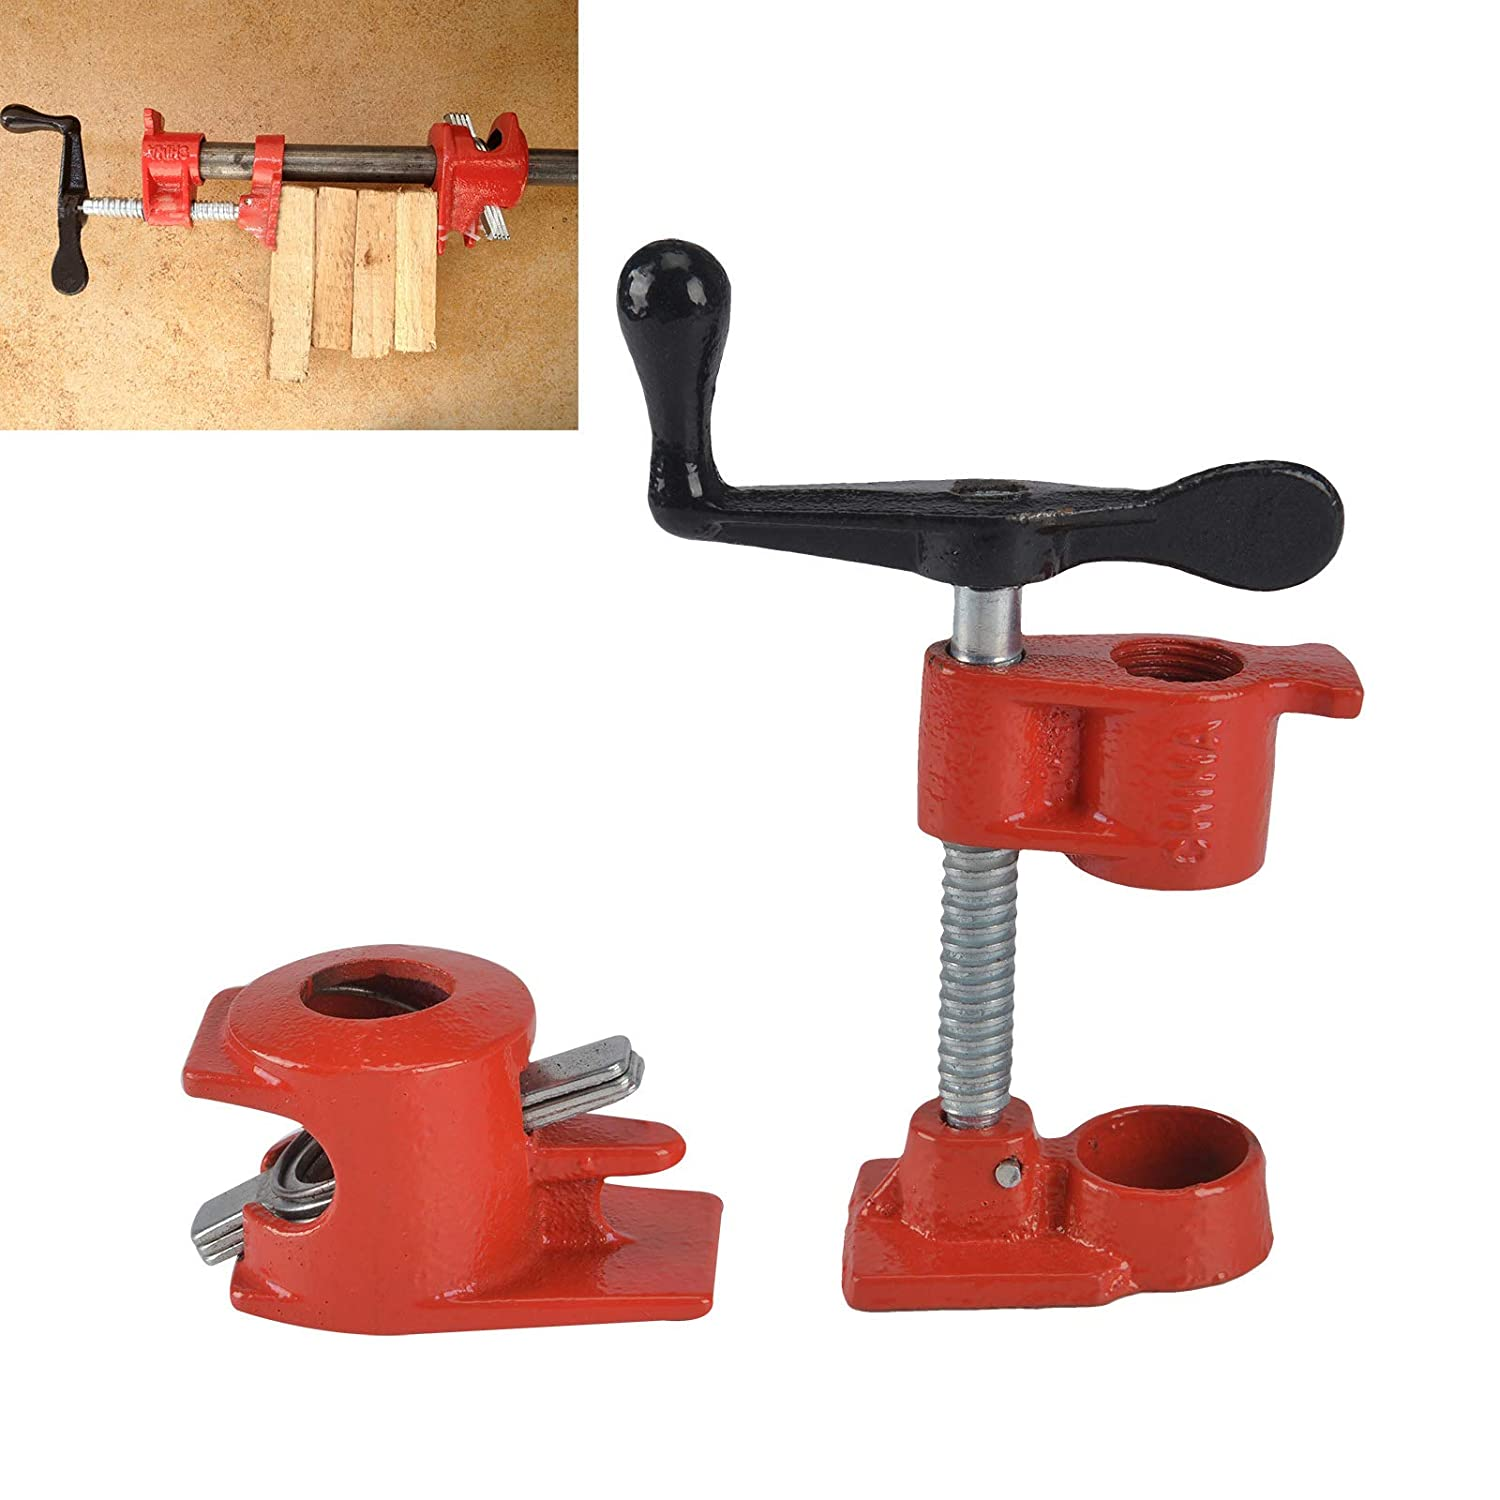 PetHot 1/2' Heavy Duty Cast Iron Pipe Clamp for Wood Gluing Woodworking Clamping JY